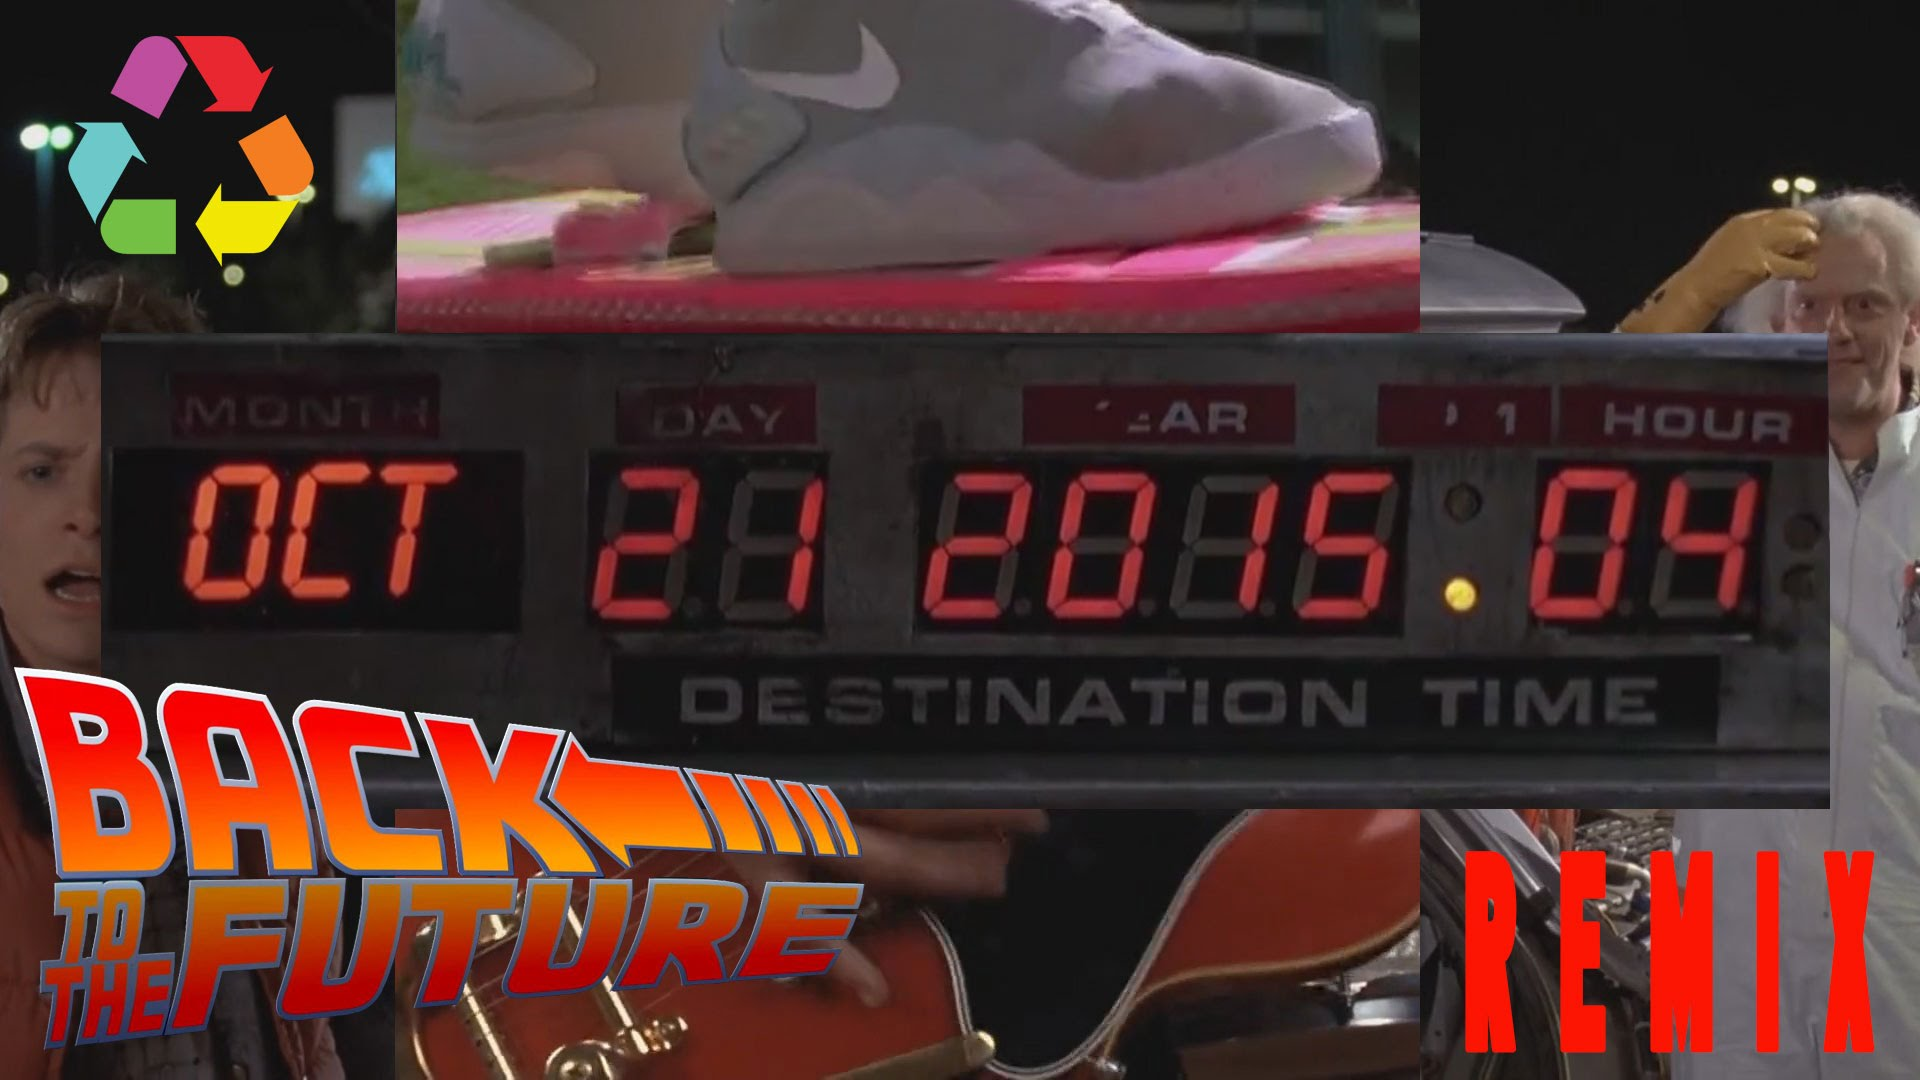 """Natürlich remixt Eclectic Method auch """"Back To The Future"""""""